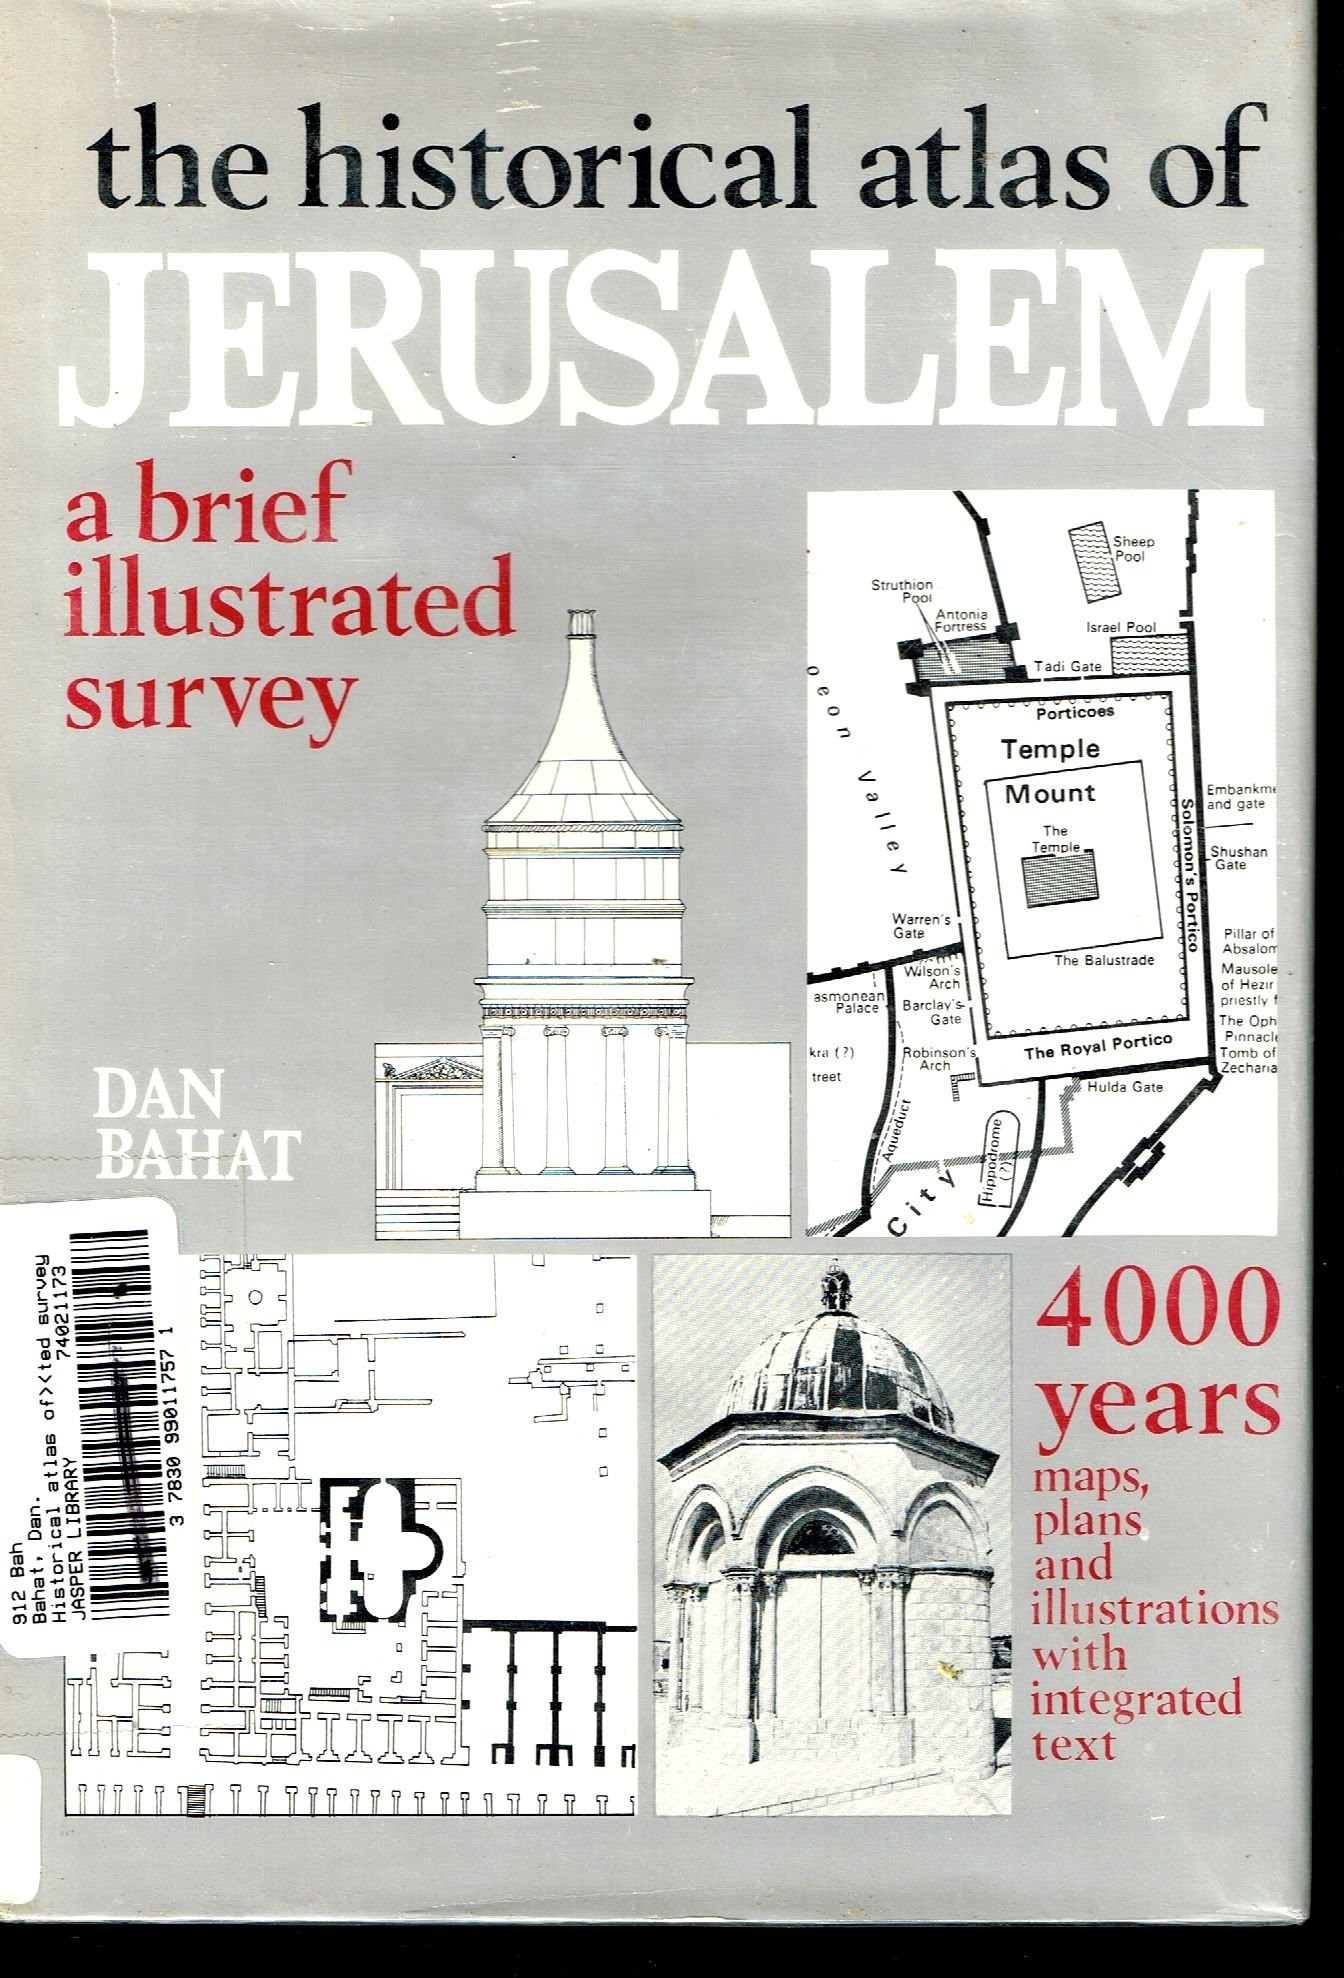 The historical atlas of Jerusalem: A brief illustrated survey